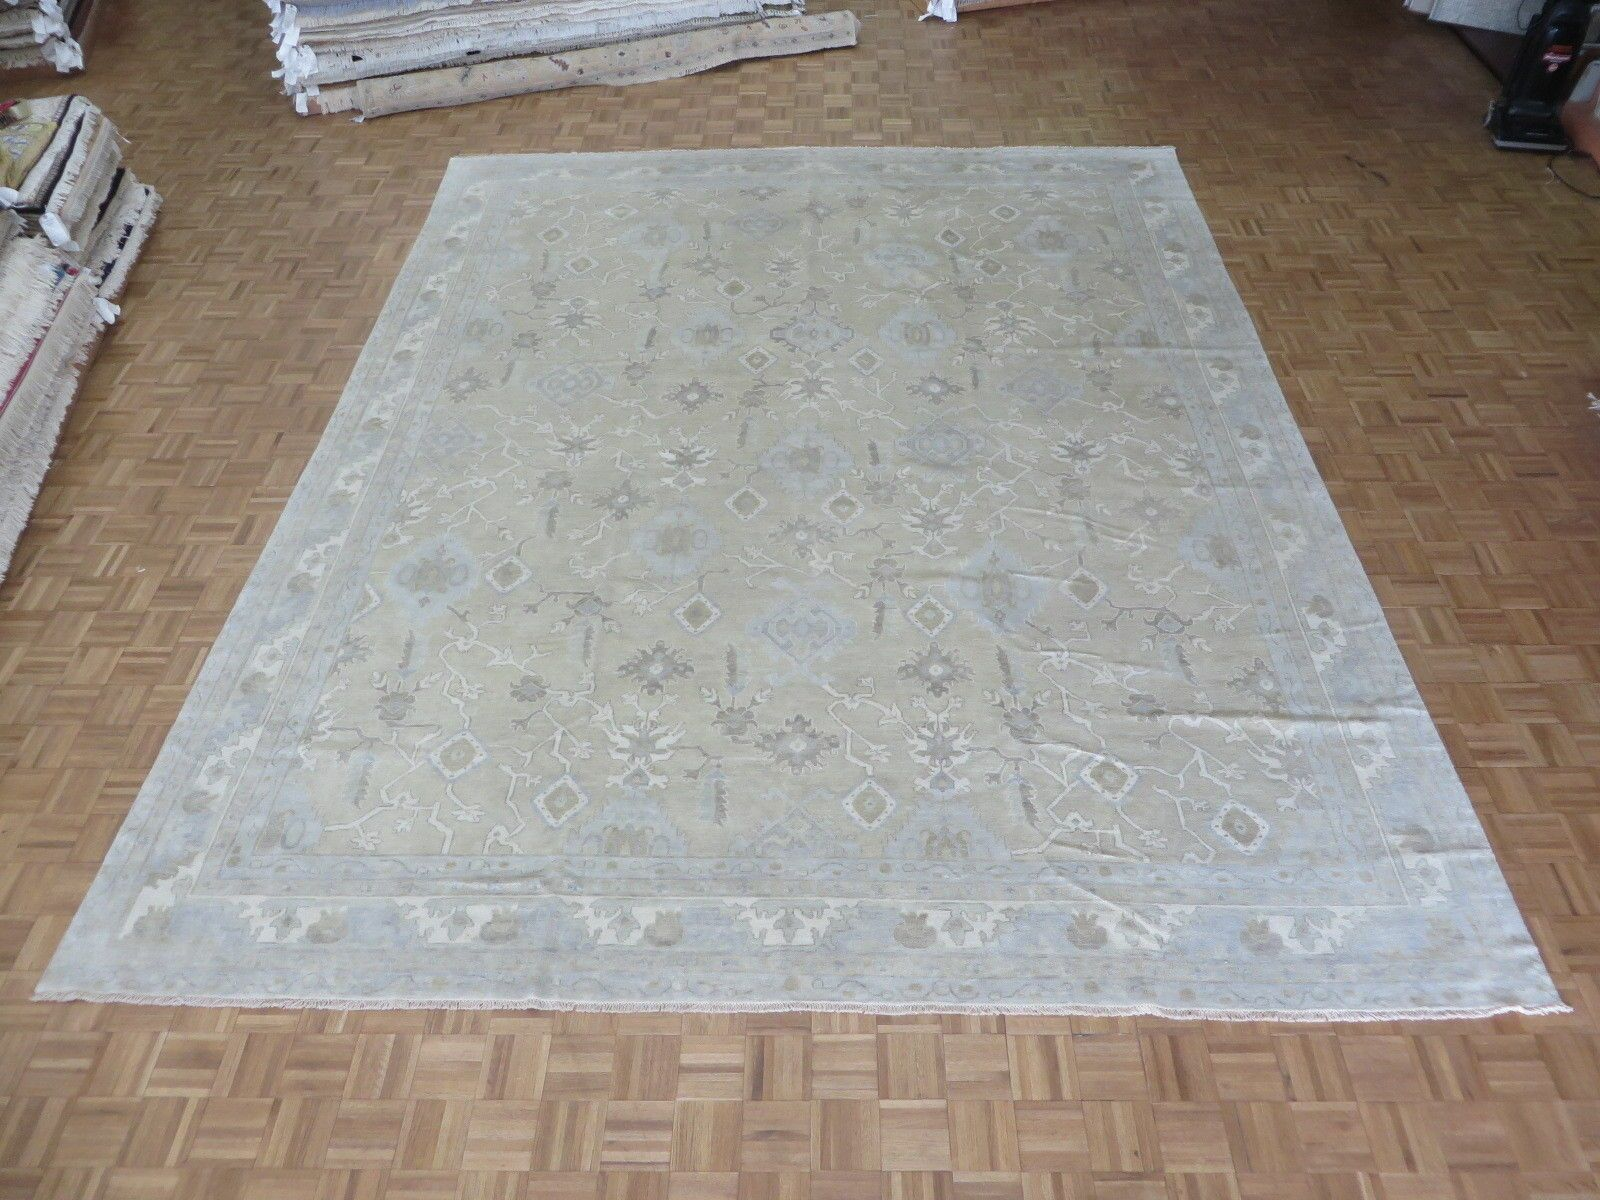 One-of-a-Kind Pellegrino Turkish Oushak Hand-Knotted Wool Beige Area Rug Rug Size: Rectangle 11'10